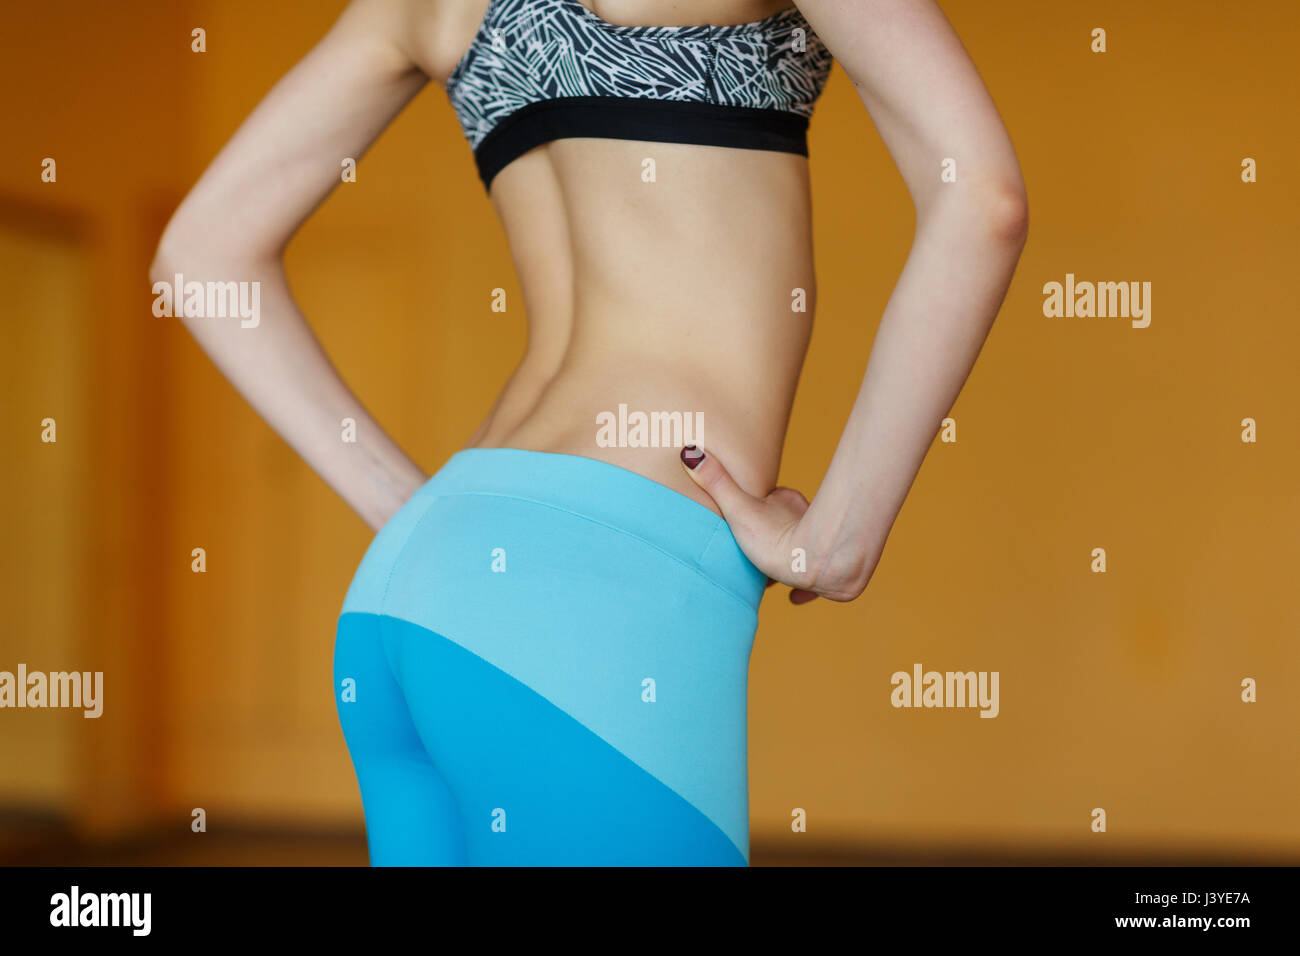 Athletic young girl at gym Photo Stock